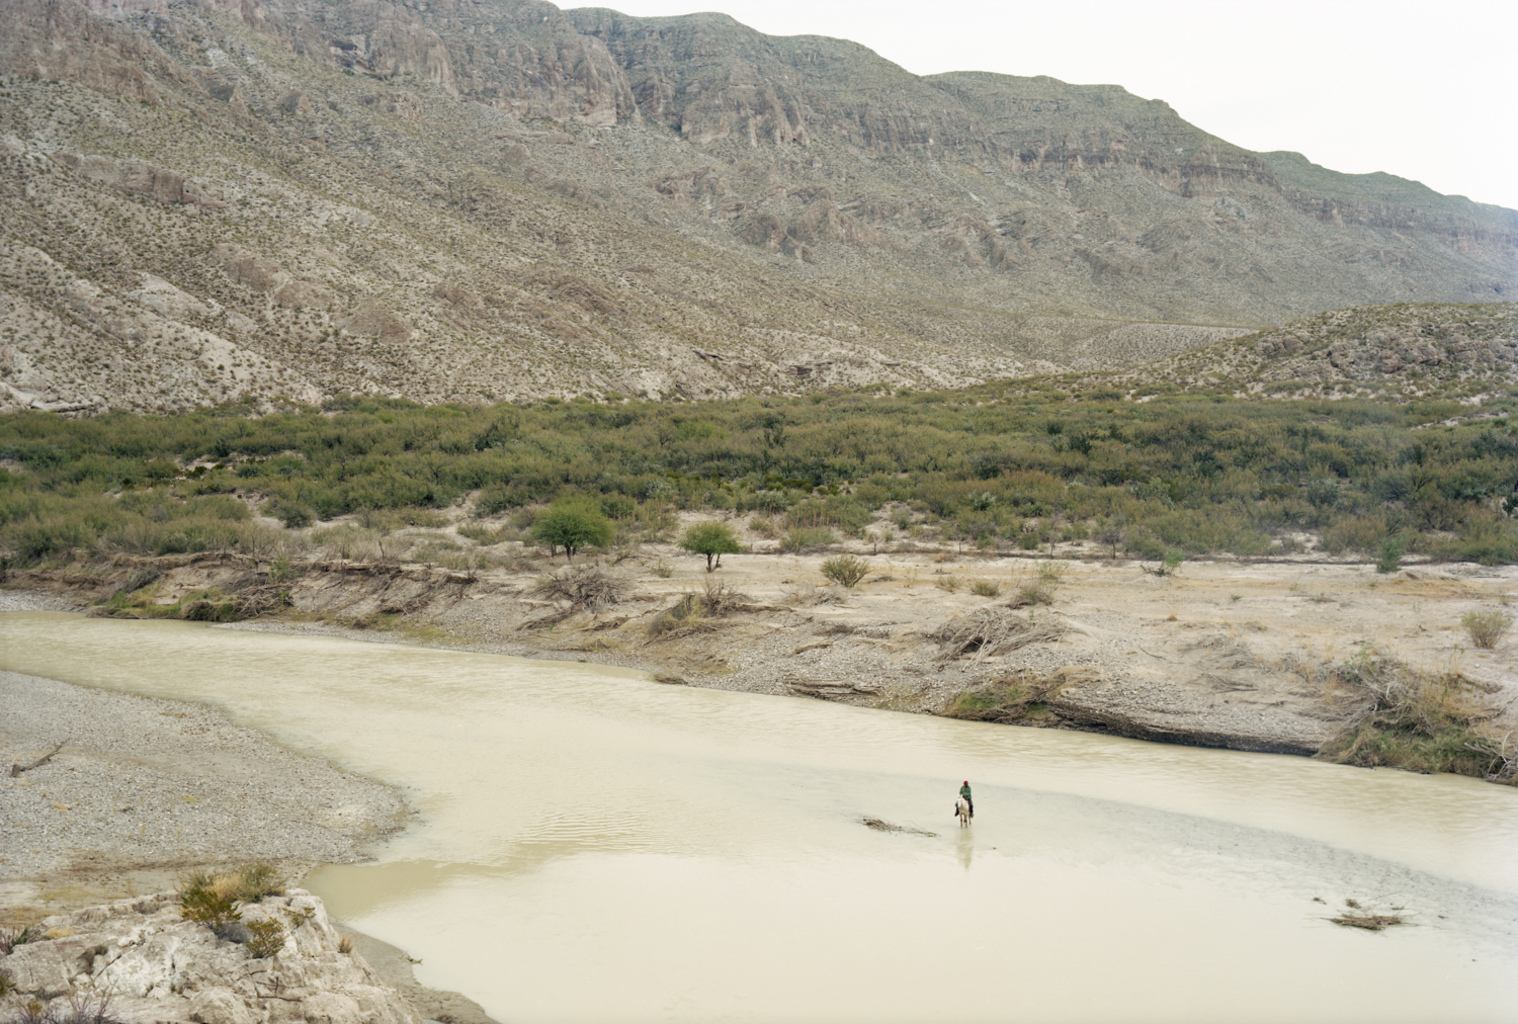 Untitled (Man on Horse in Rio Grande). Big Bend National Park, Texas, 2009 © Victoria Sambunaris